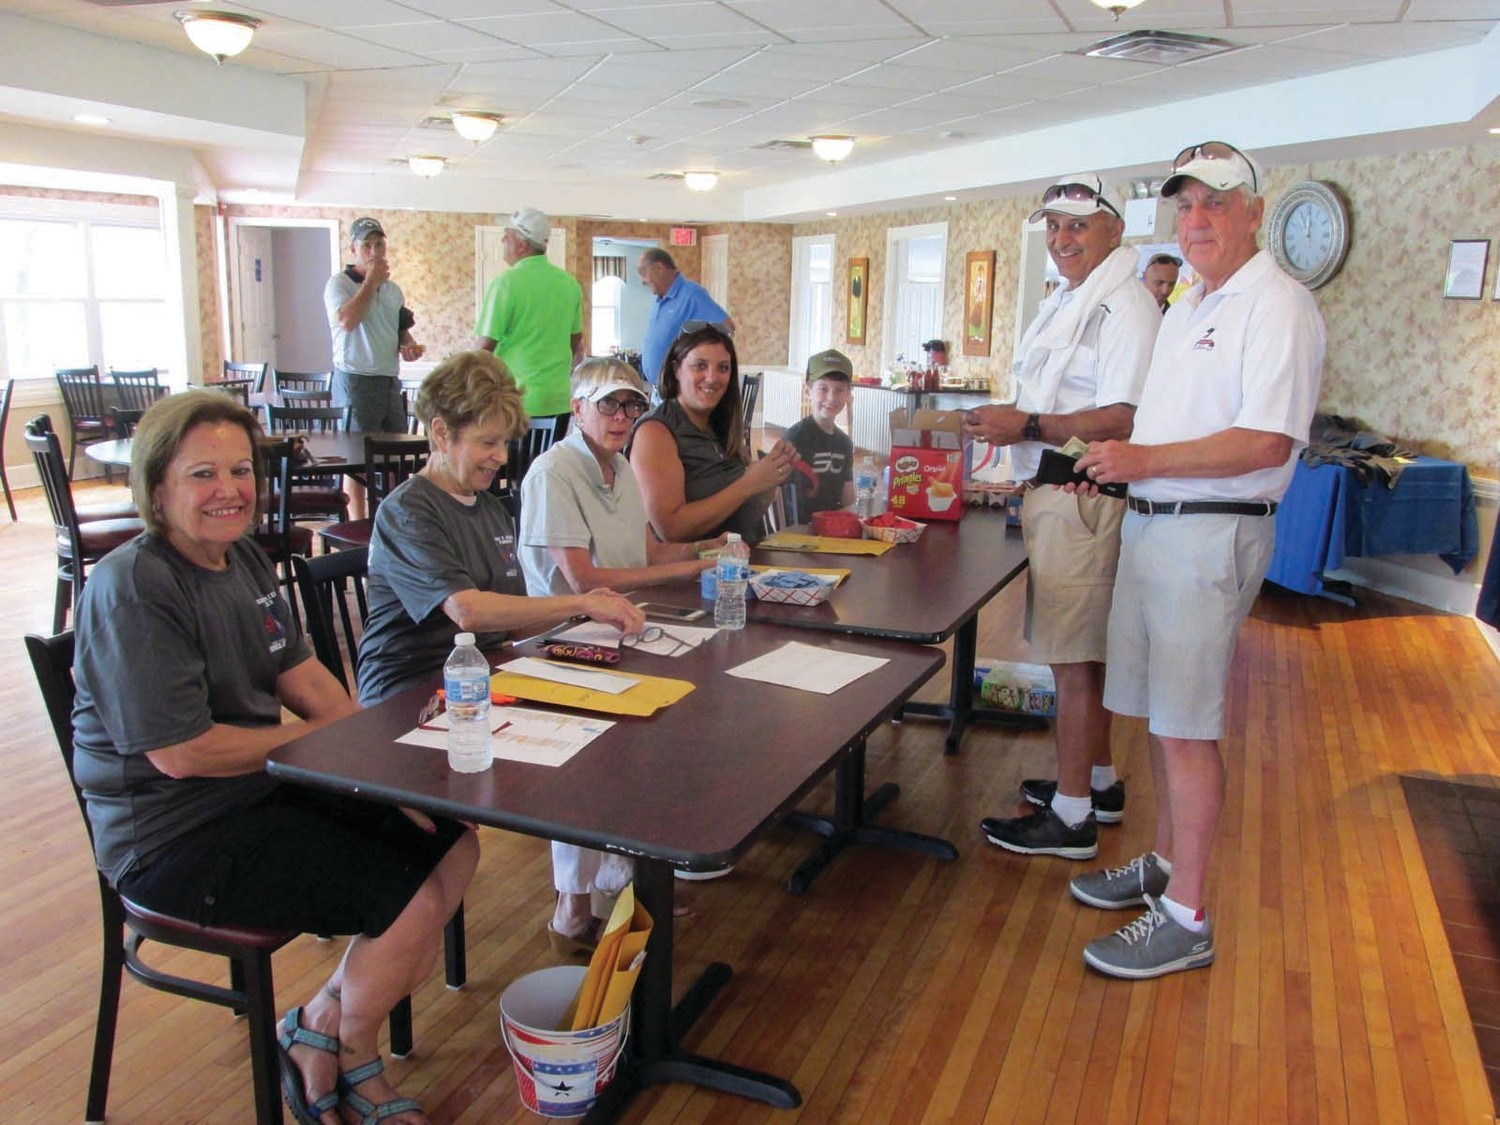 WARM WELCOME: Lois Hopkins, Jan Zucchi, Samantha Mazzie and Shawn Hopkins are all smiles after checking in golfers like Vin LaFazia and Bruce Vittner at the recent Gary V. Mazzie Memorial JHS Athletic Hall of Fame Golf Tournament.